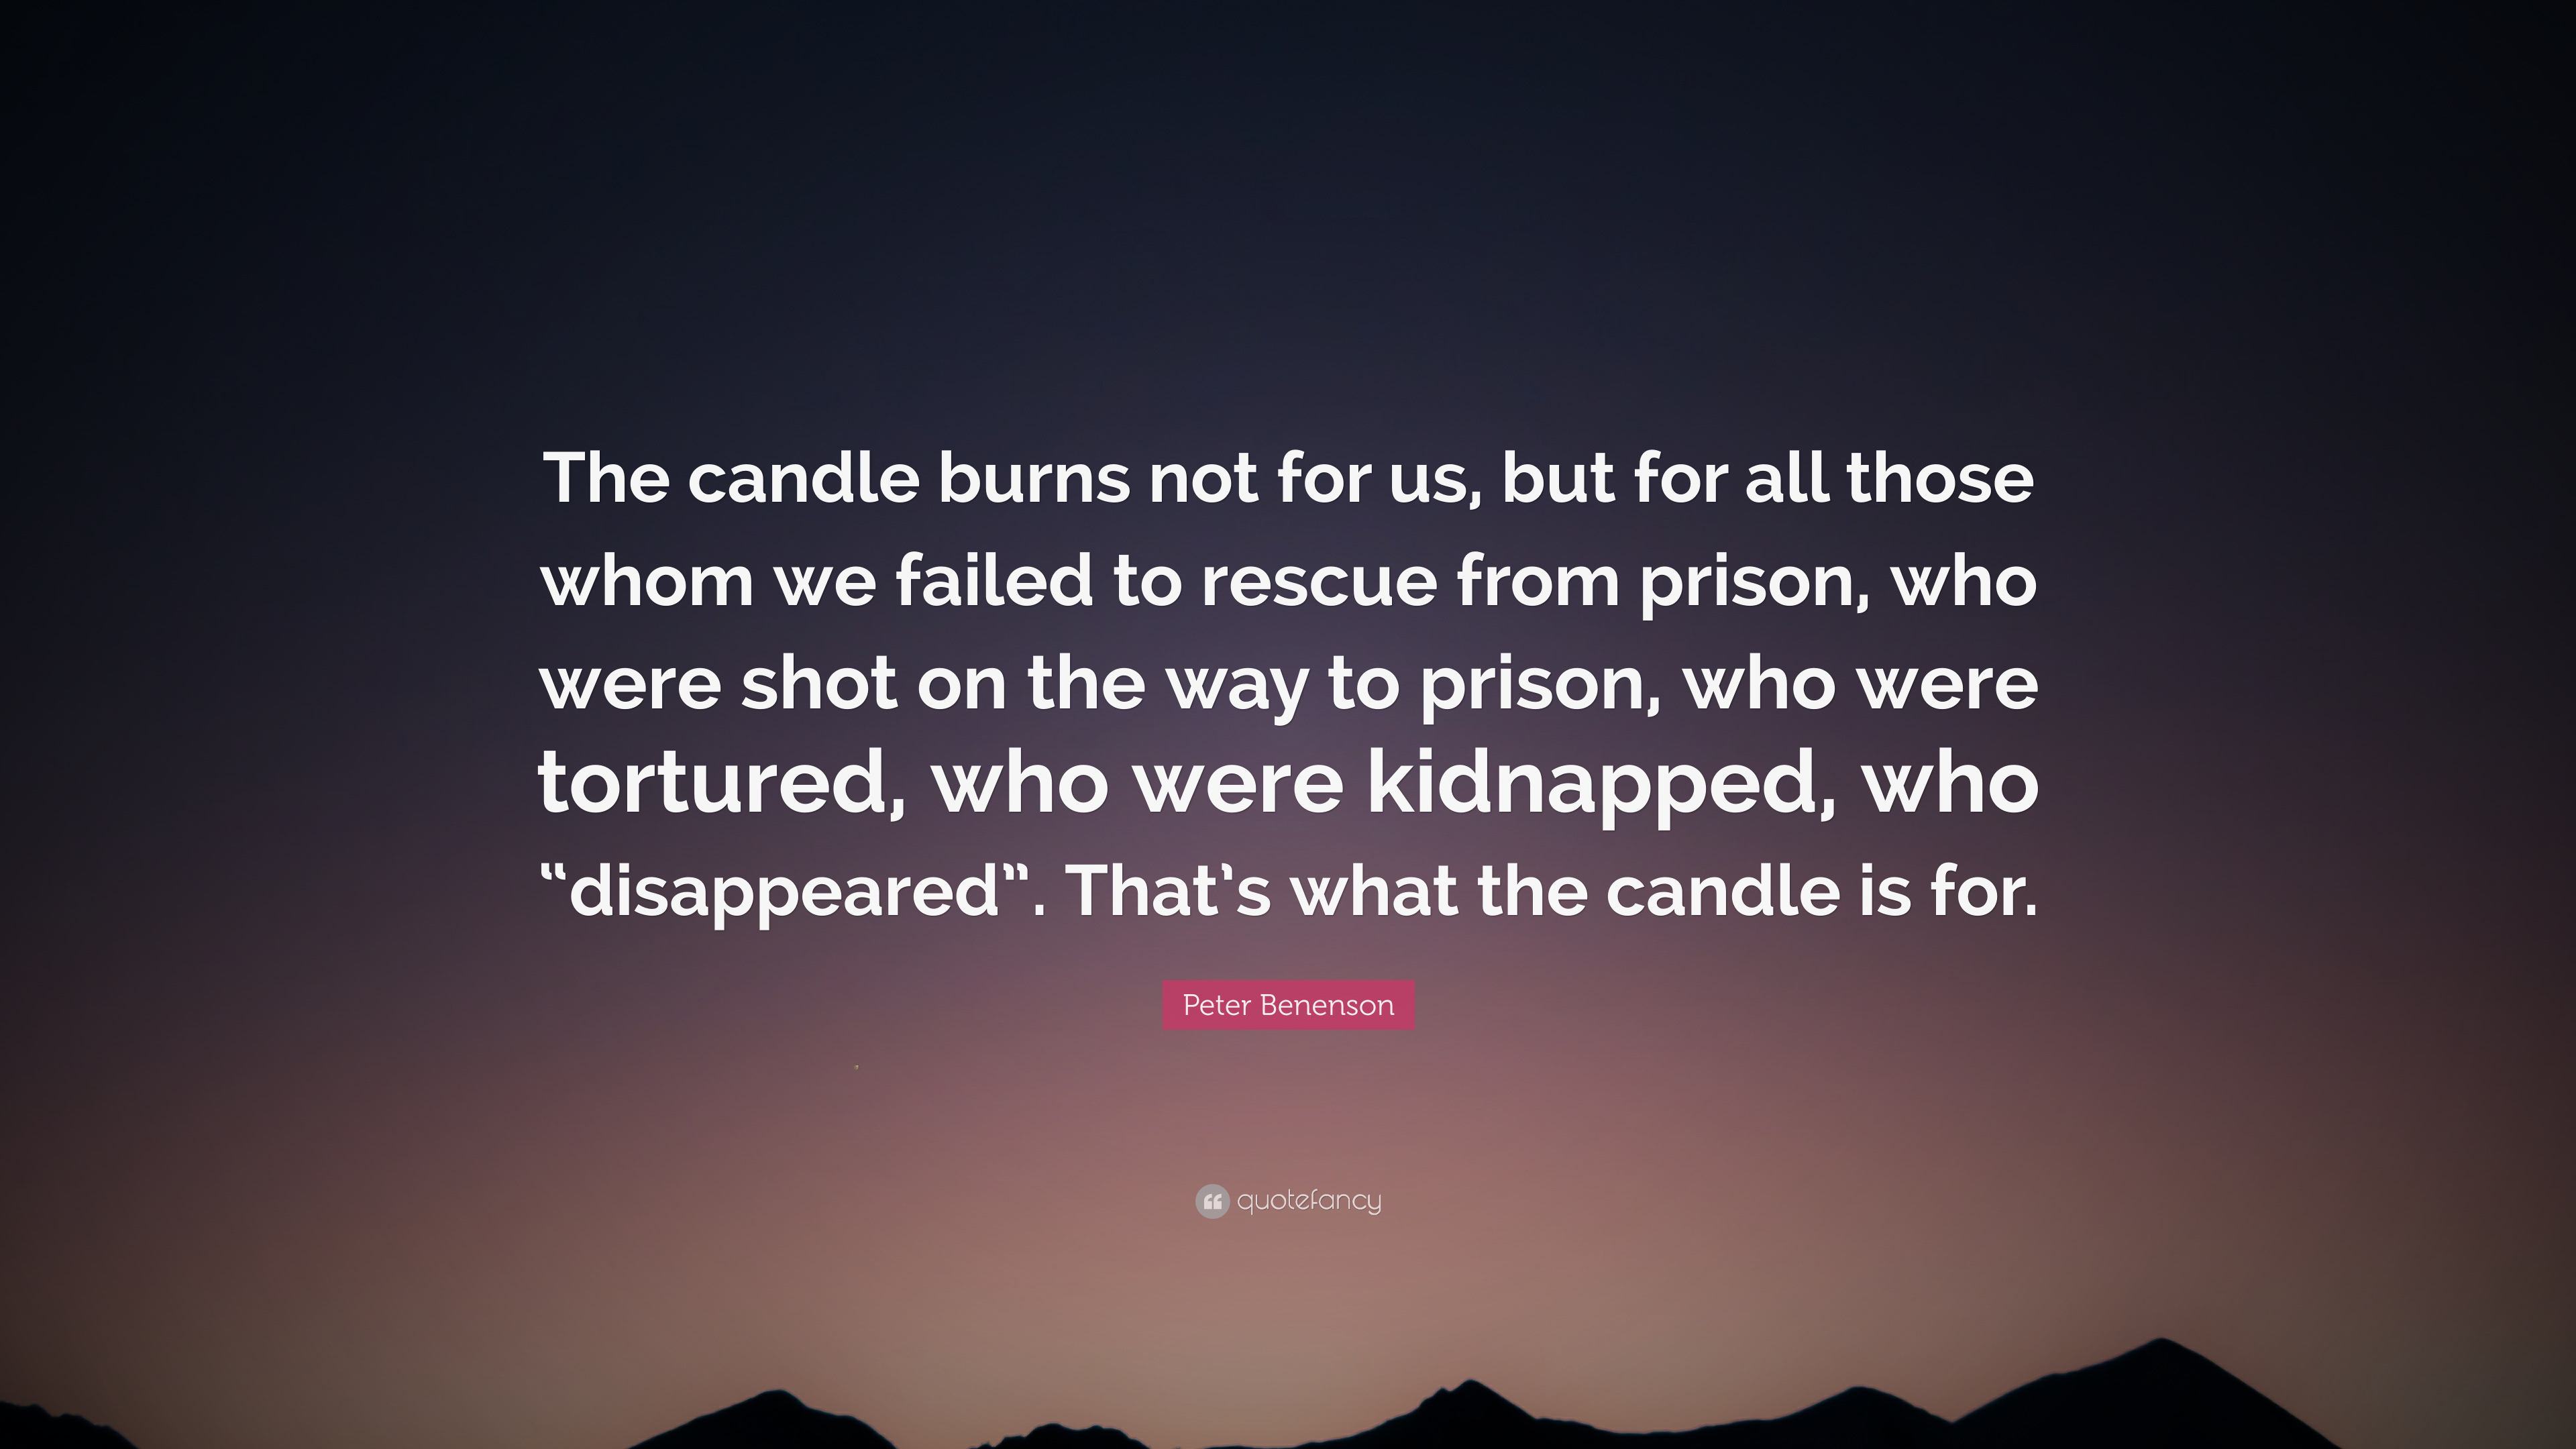 peter benenson quote the candle burns not for us but for all